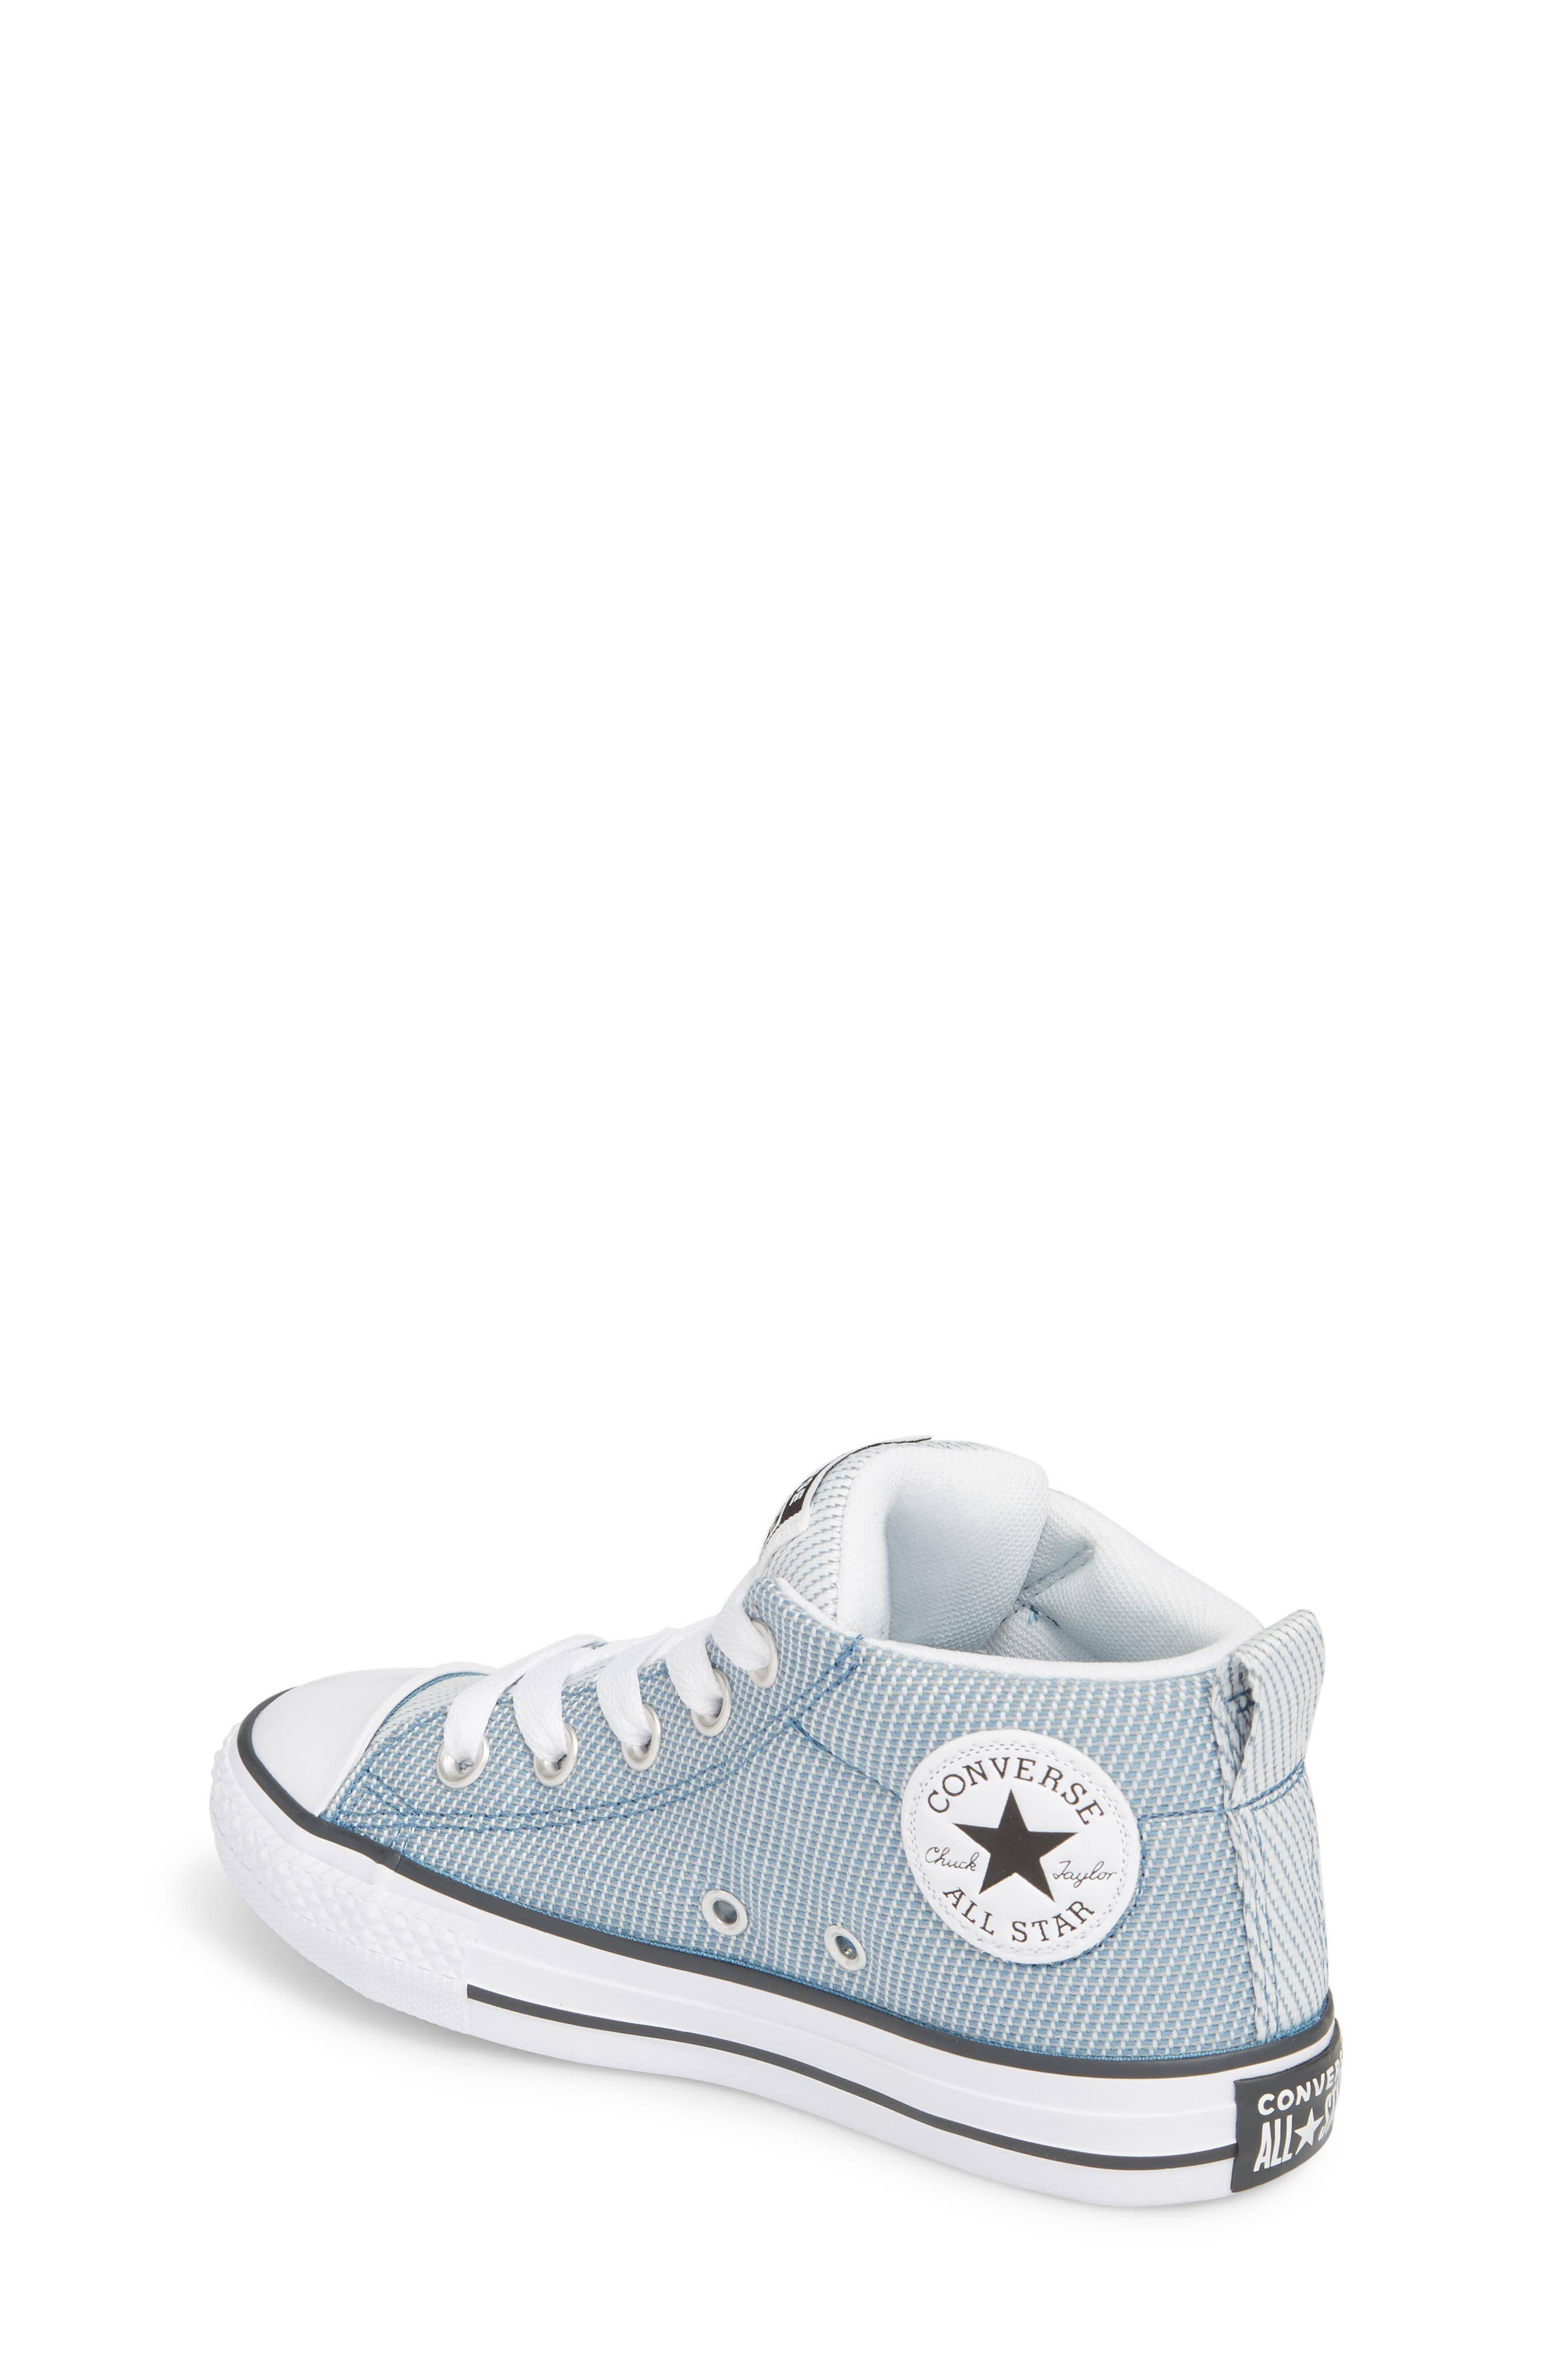 Chuck Taylor<sup>®</sup> All Star<sup>®</sup> Woven Street Mid Sneaker,                             Alternate thumbnail 2, color,                             400